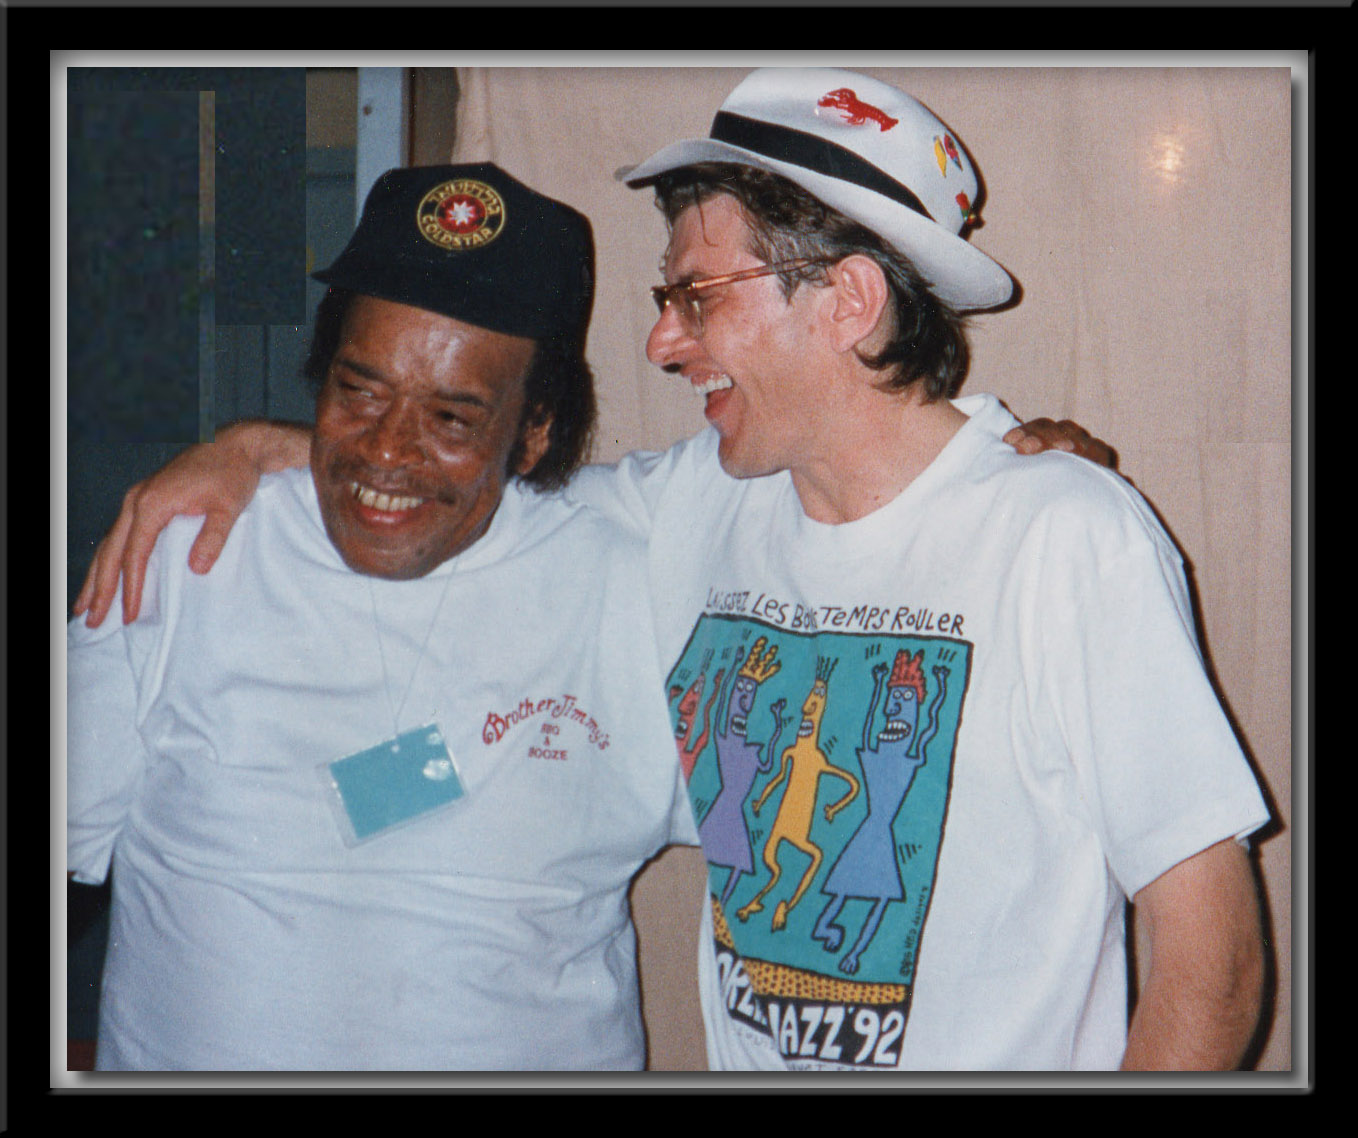 James Cotton and Fabrizio Poggi - Pistoia Blues 93